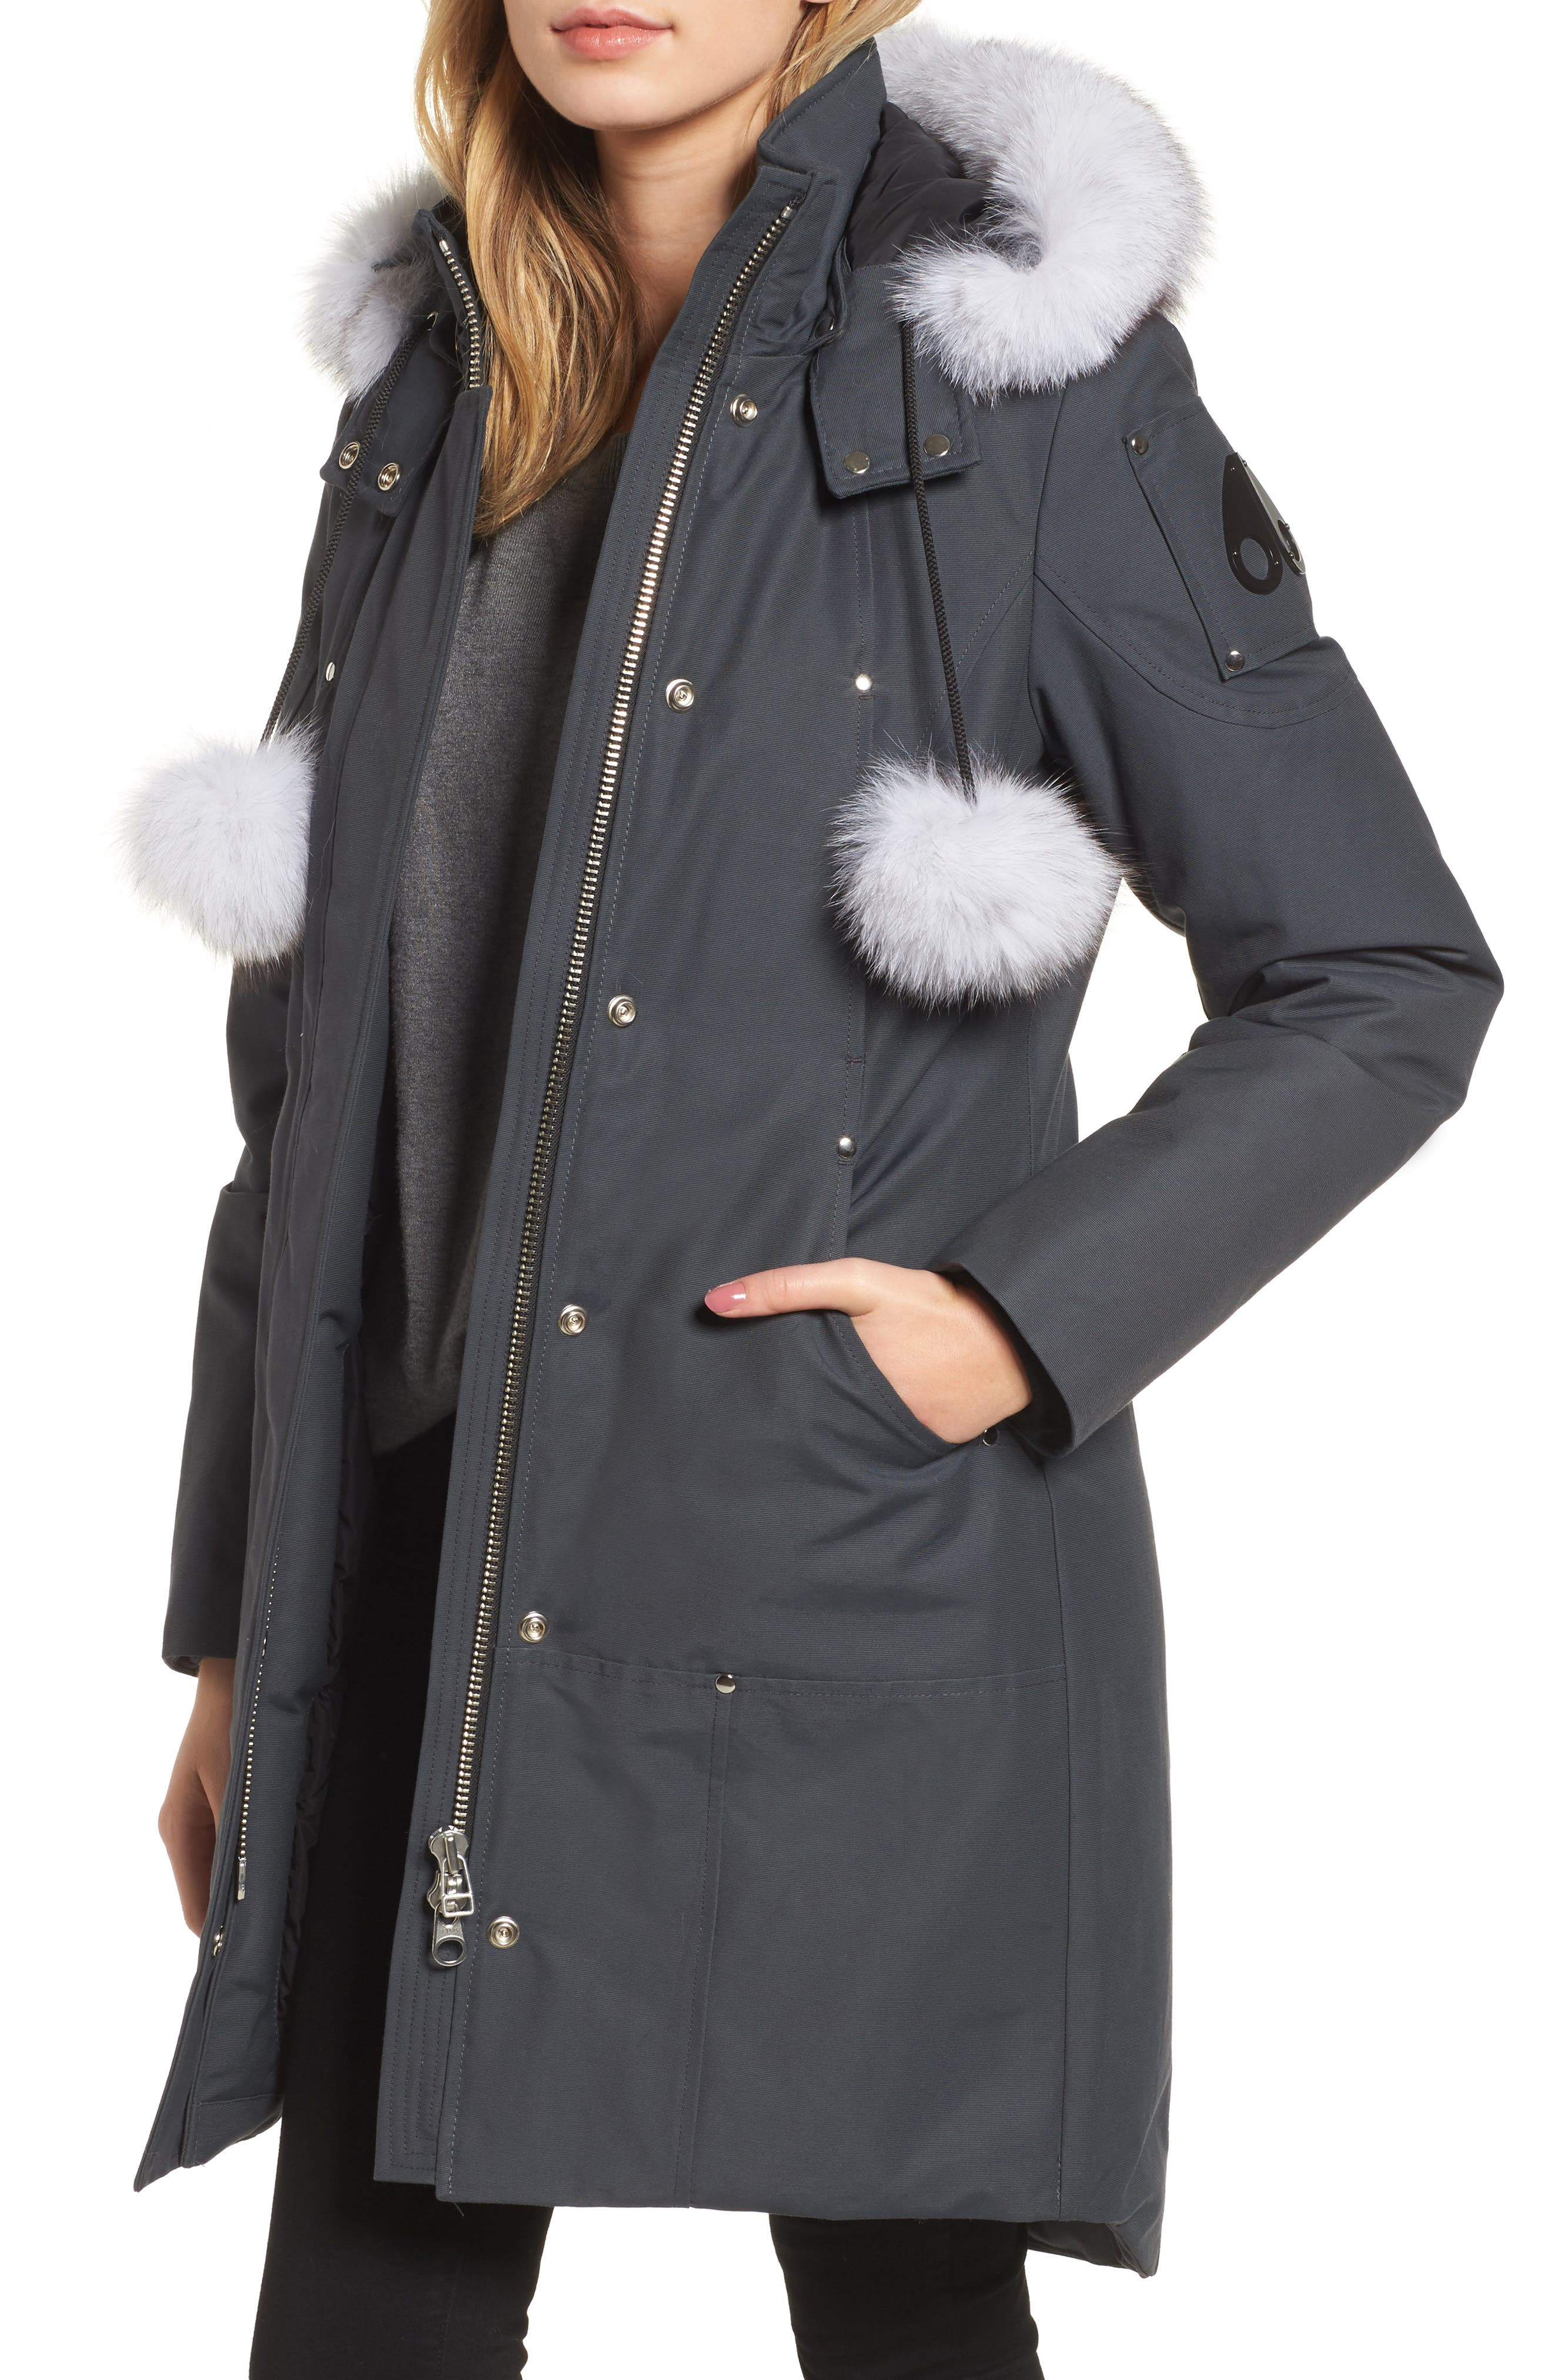 'Stirling' Down Parka with Genuine Fox Fur Trim,                             Main thumbnail 1, color,                             Granite/ White Fur